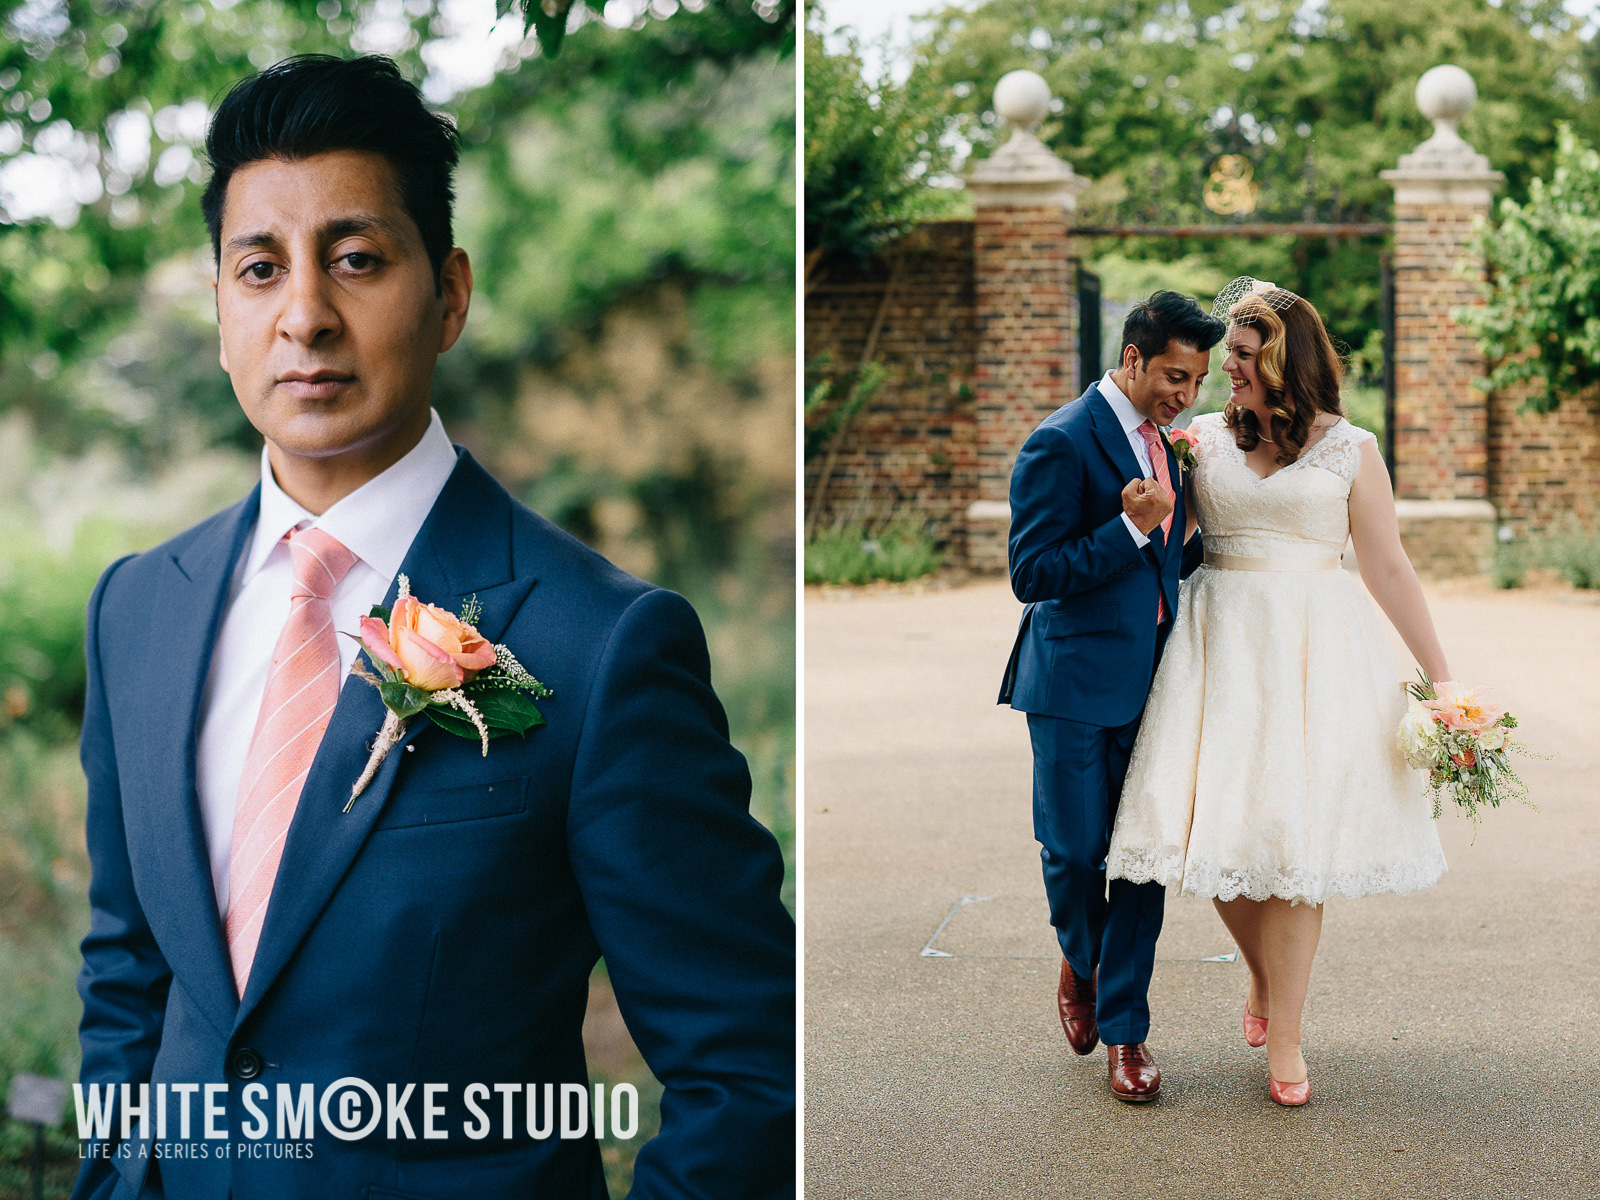 harriet_sanjeev_kew_garden_105_cambridge_cottage_wedding